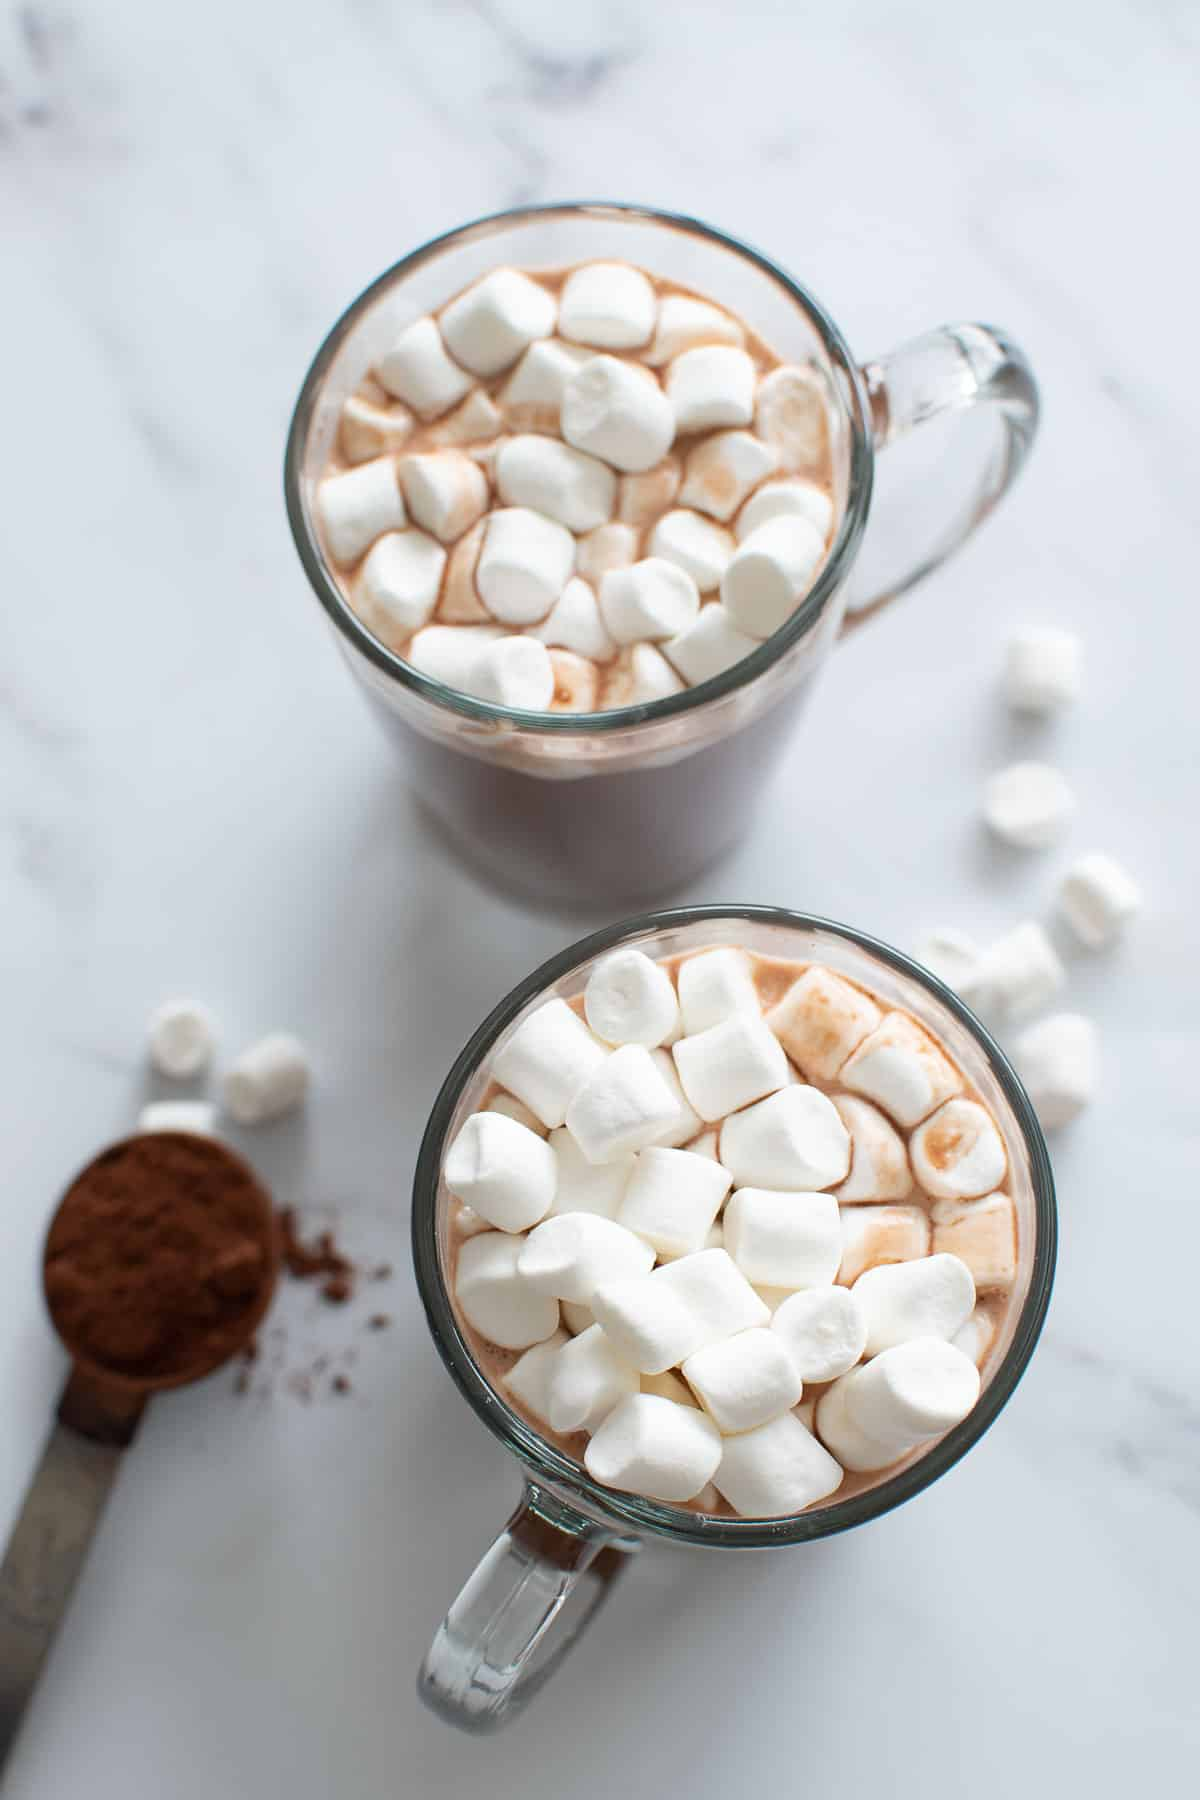 Two cups of sugar free hot chocolate, with a spoon of cocoa powder on the side.